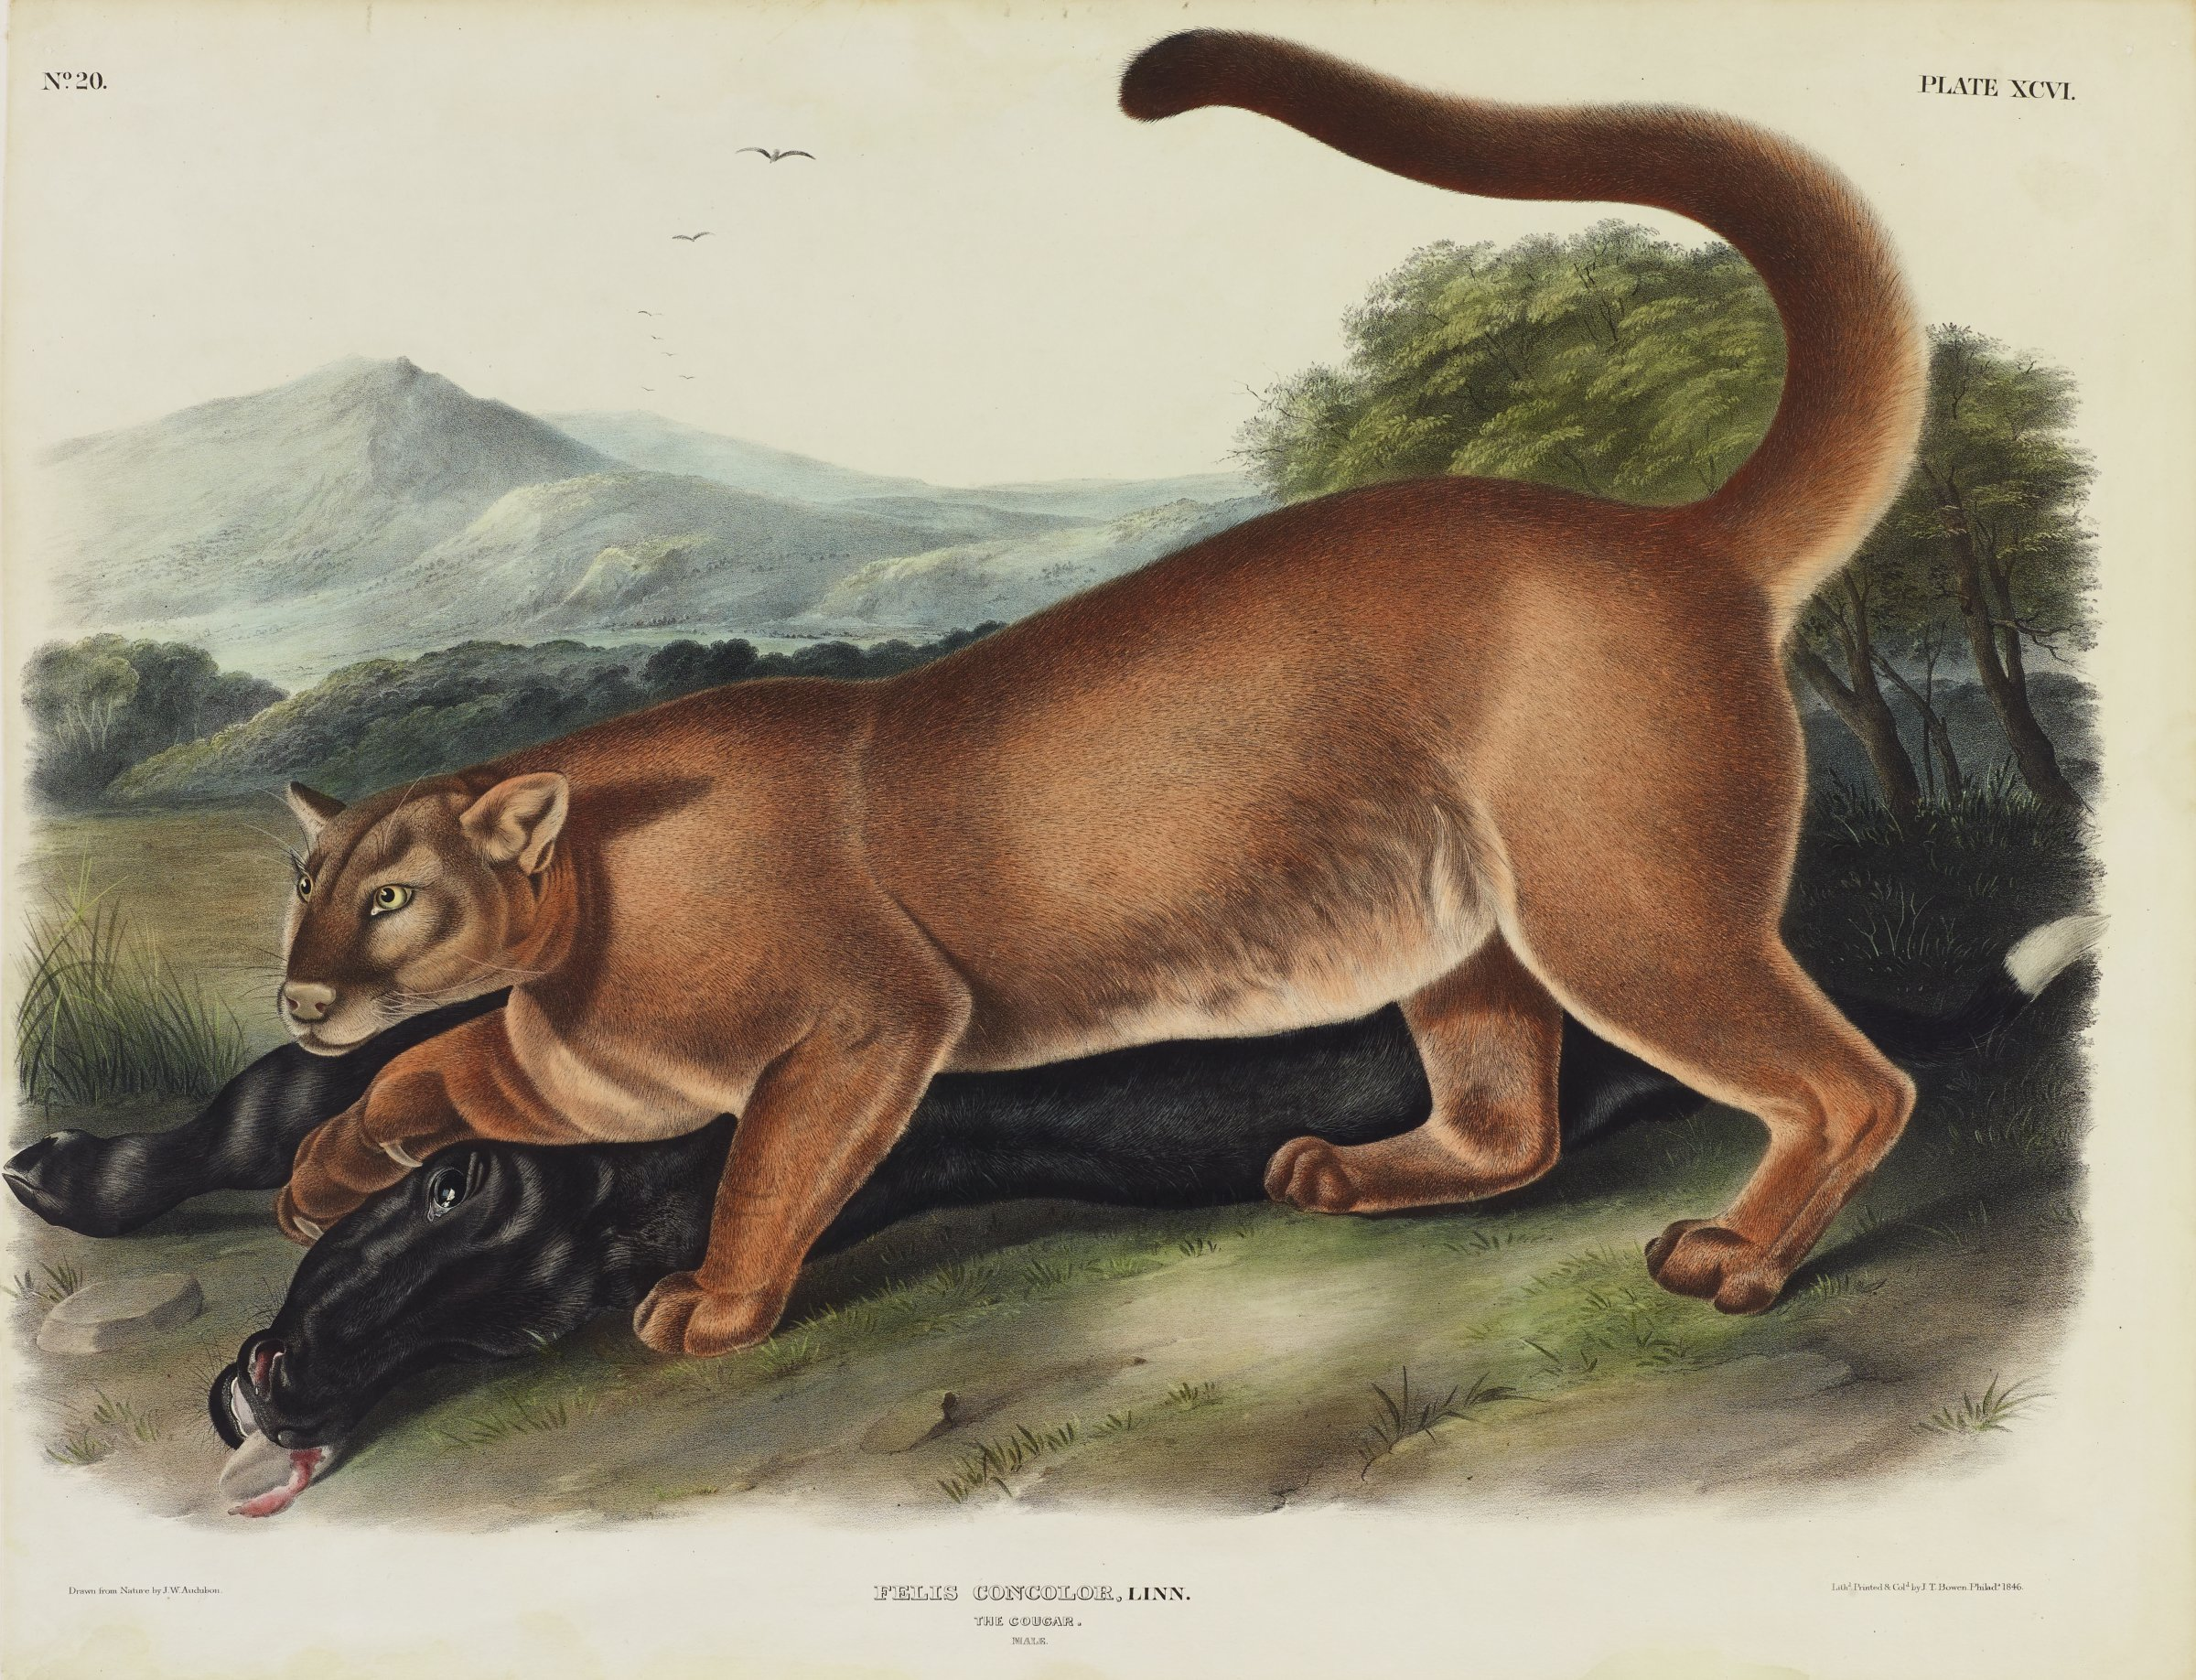 A large brown cougar crouches over a black calf that he has killed. The cougar's front right paw is placed on the calf's neck as he looks forward and alert. The animals are set in a grassy field with nearby greenery. Mountains populate the background, and two birds fly overhead.